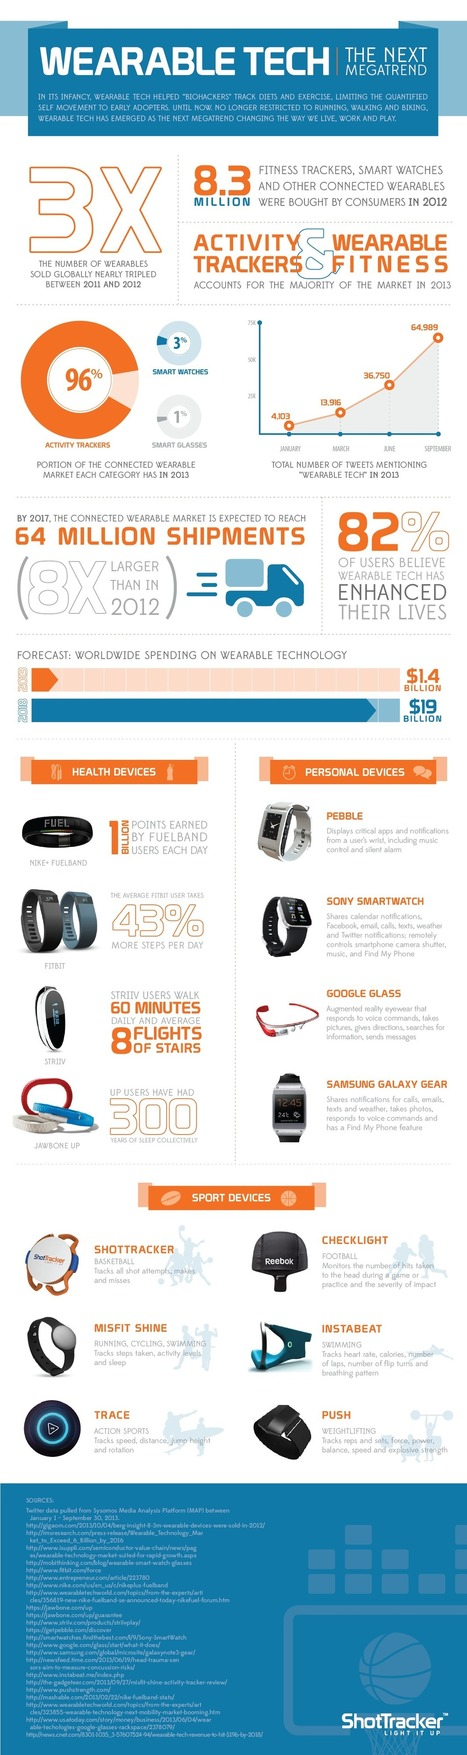 Ropa tecnológica: la próxima megatendencia #infografia #infographic #tech | Digital-News on Scoop.it today | Scoop.it